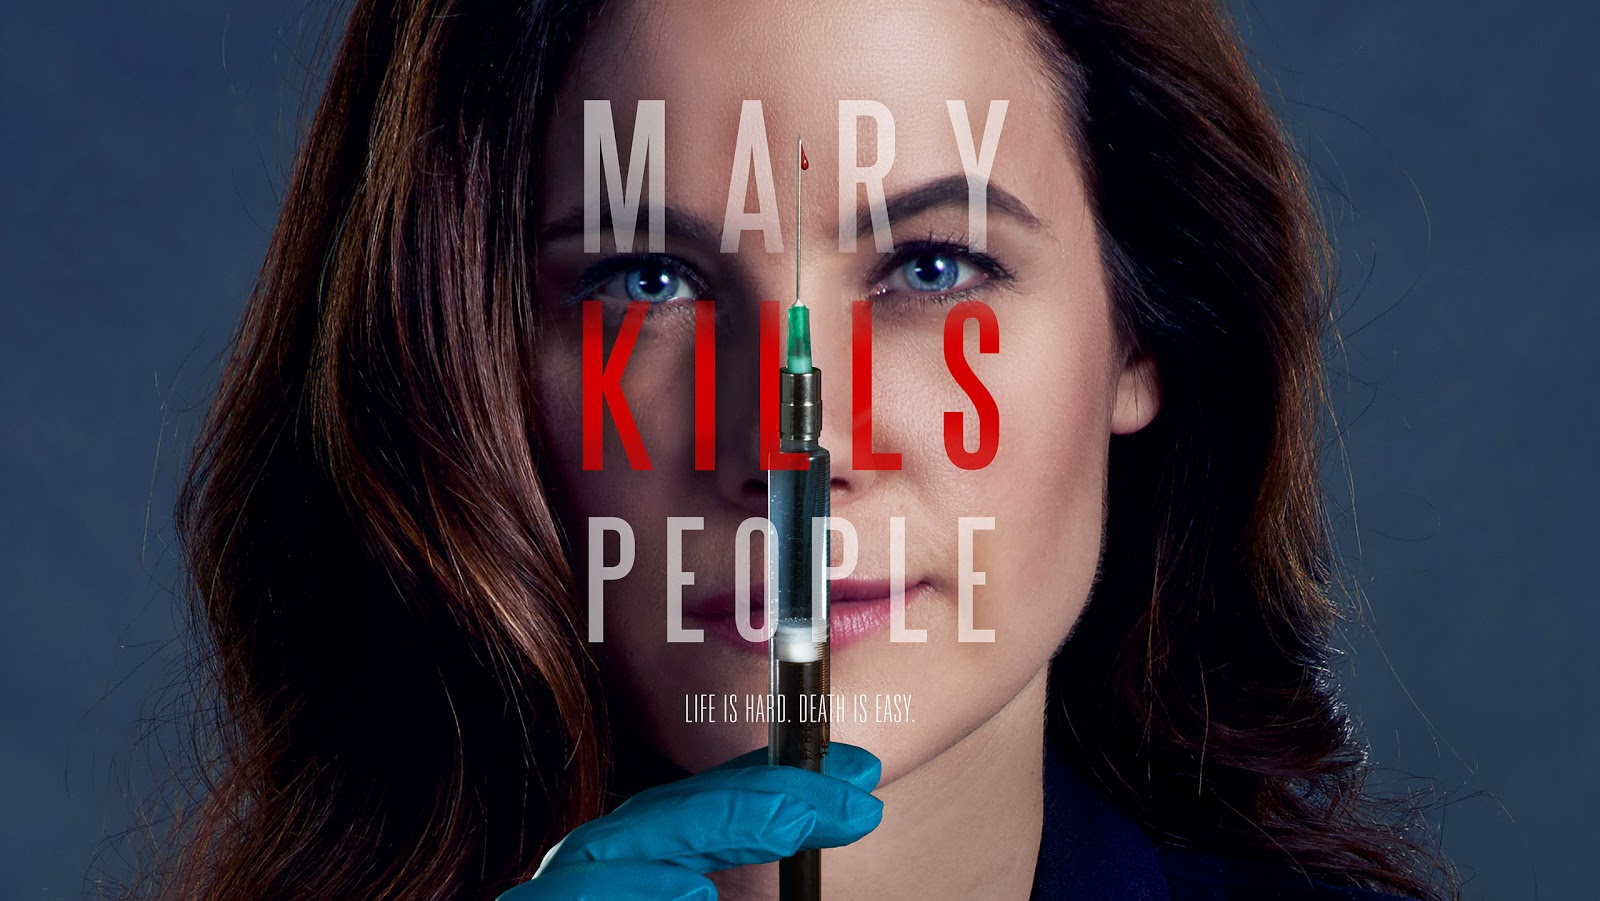 mary-kills-people.jpg